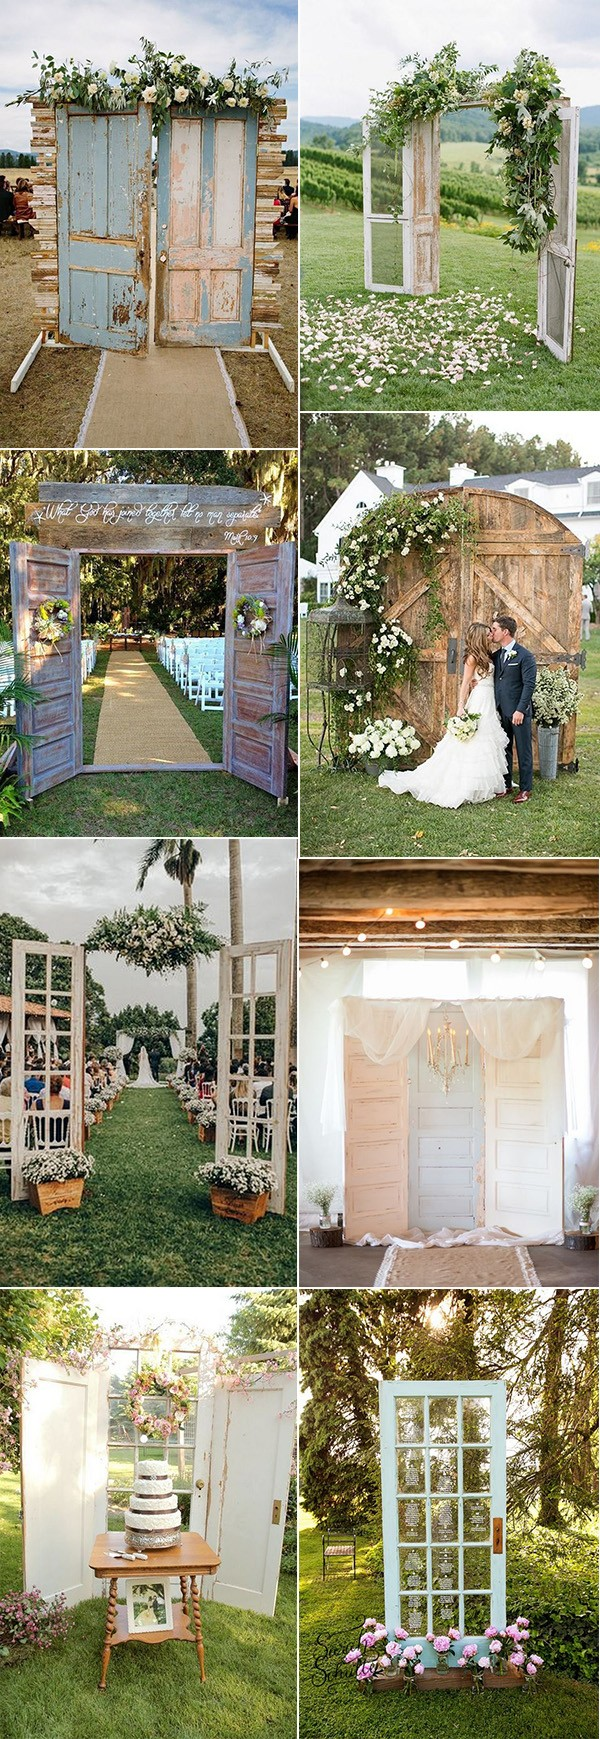 20 rustic wedding decoration ideas with vintage doors rustic outdoor wedding decoration ideas with vintage doors junglespirit Gallery